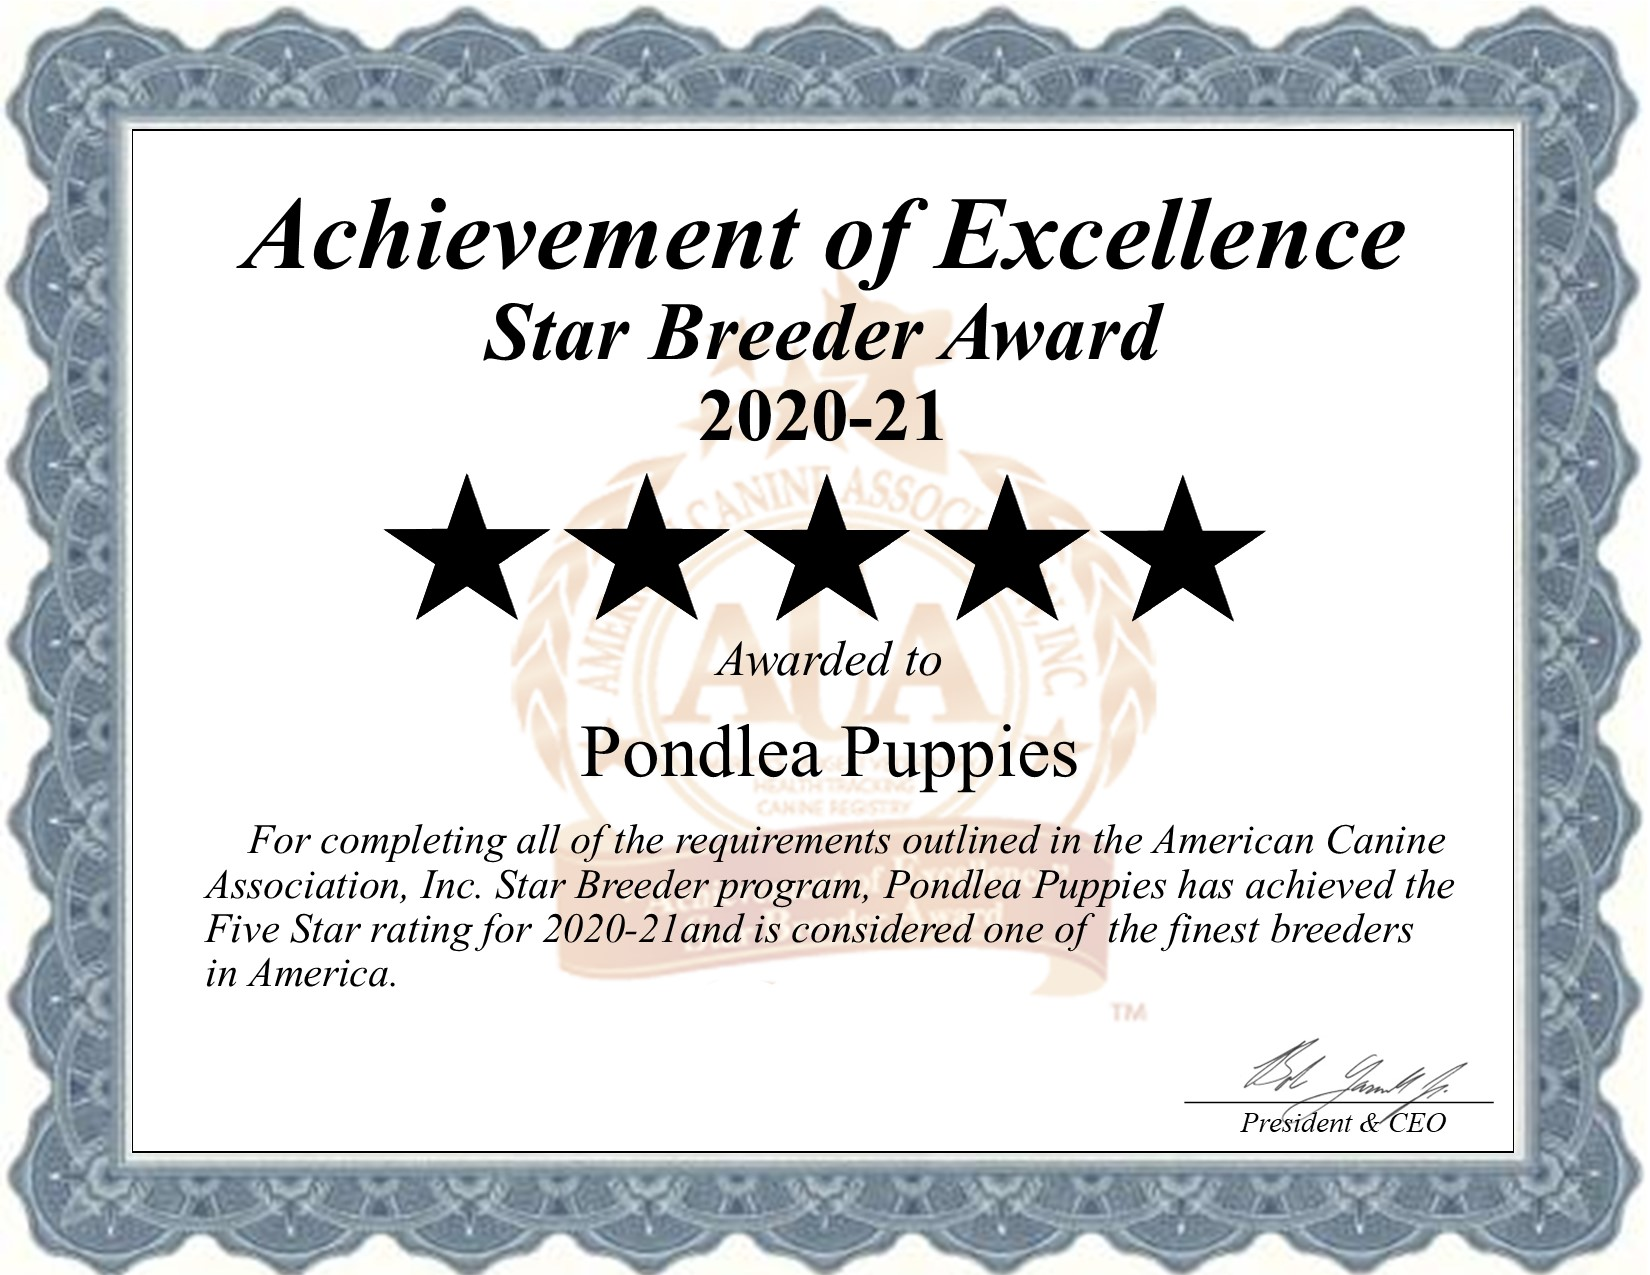 Pondlea, Puppies, dog, breeder, star, certificate, Pondlea-Puppies, New Holland, PA, Pennsylvania, puppy, dog, kennels, mill, puppymill, usda, 5-star, aca, ica, registered, Yorkie, poohs, poos, 23-A-0679